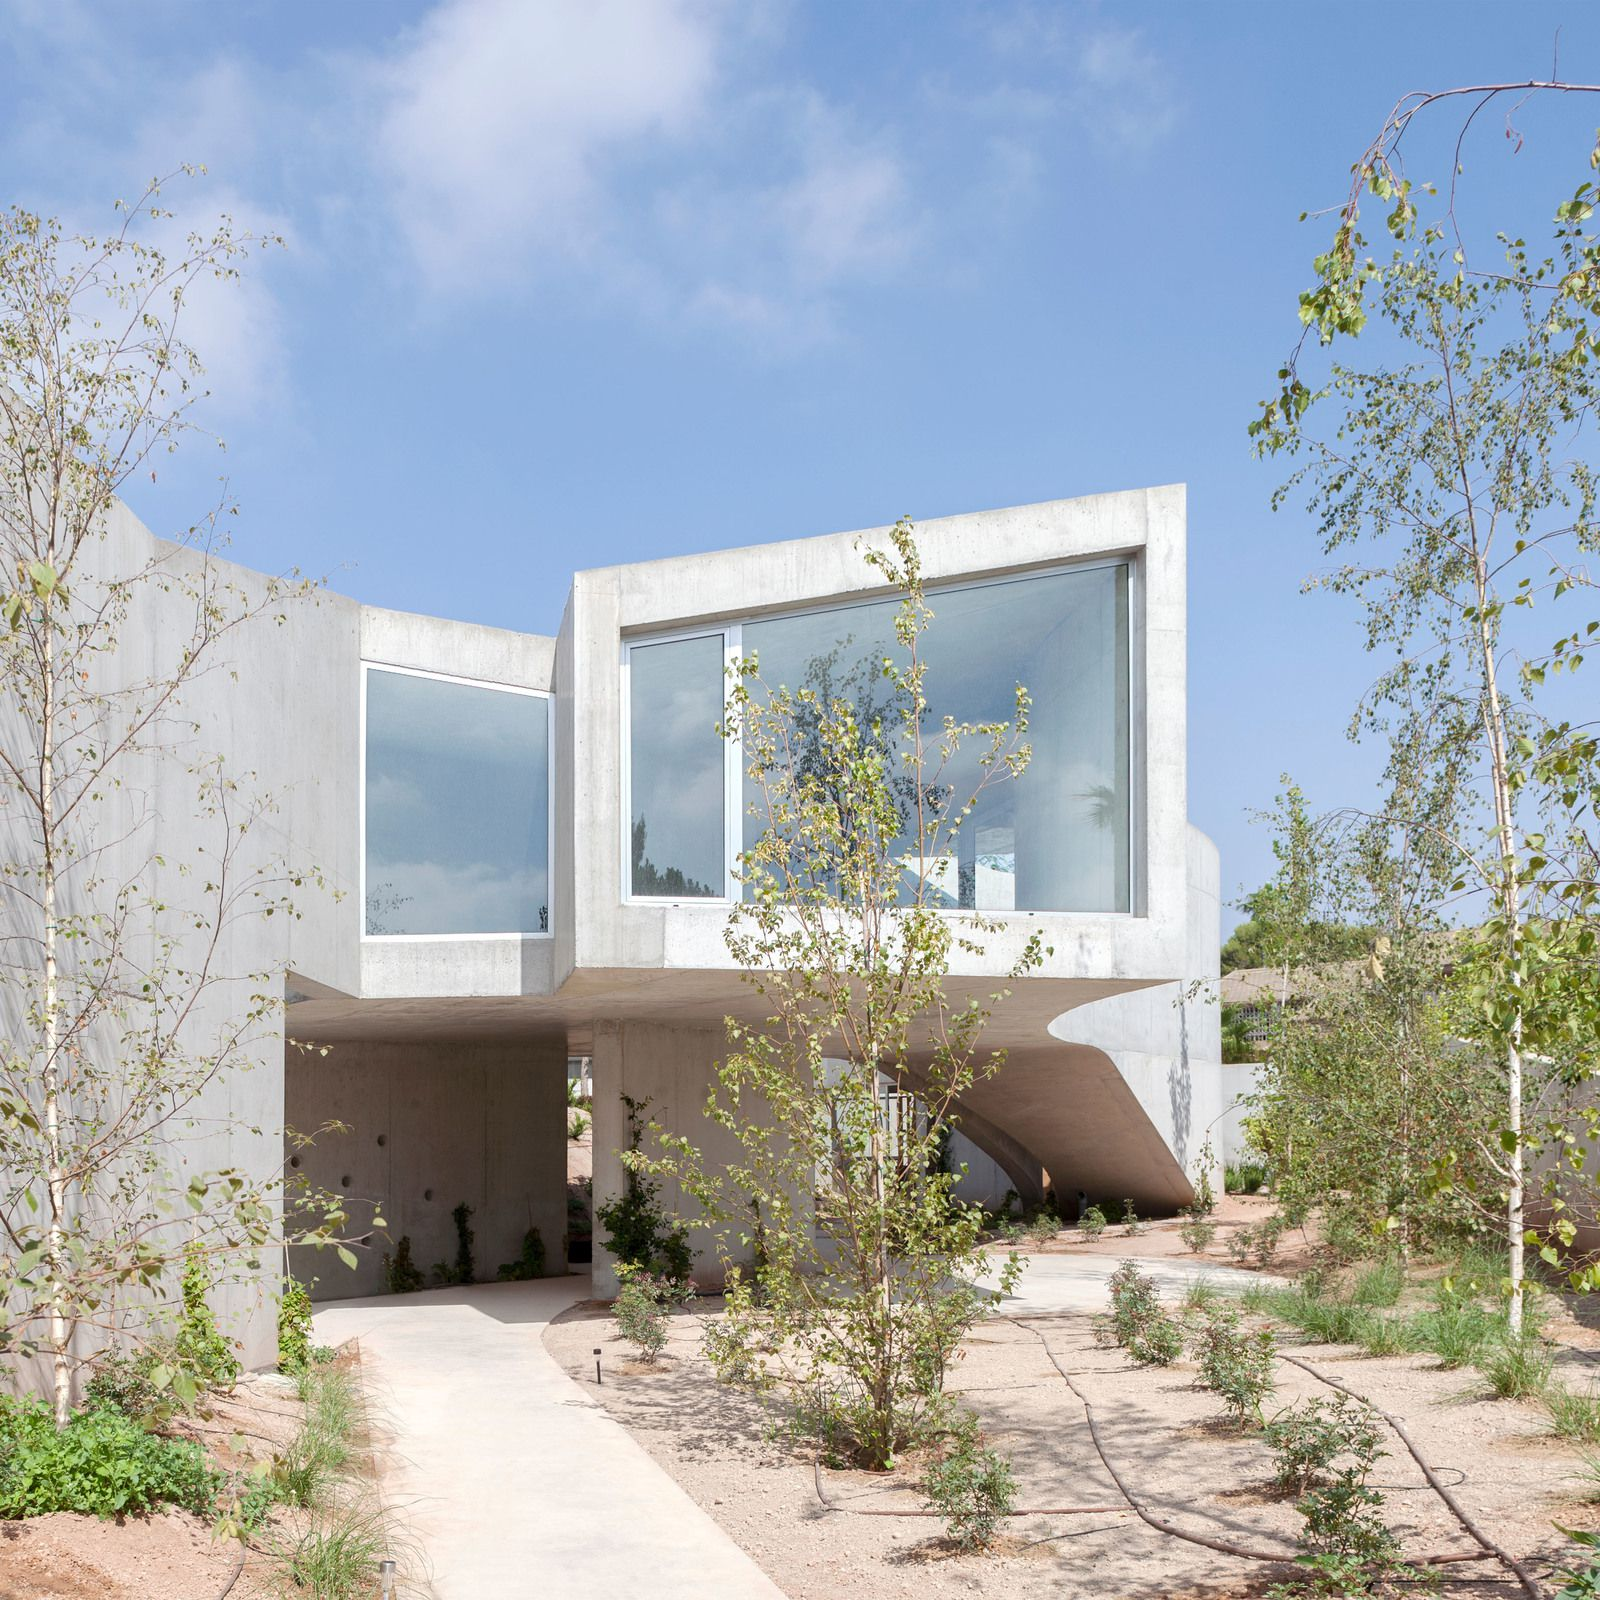 TOTO HOUSE, IN SAN VICENTE DEL RASPEIG, SPAIN, DESIGNED BY GRUPO ARANEA